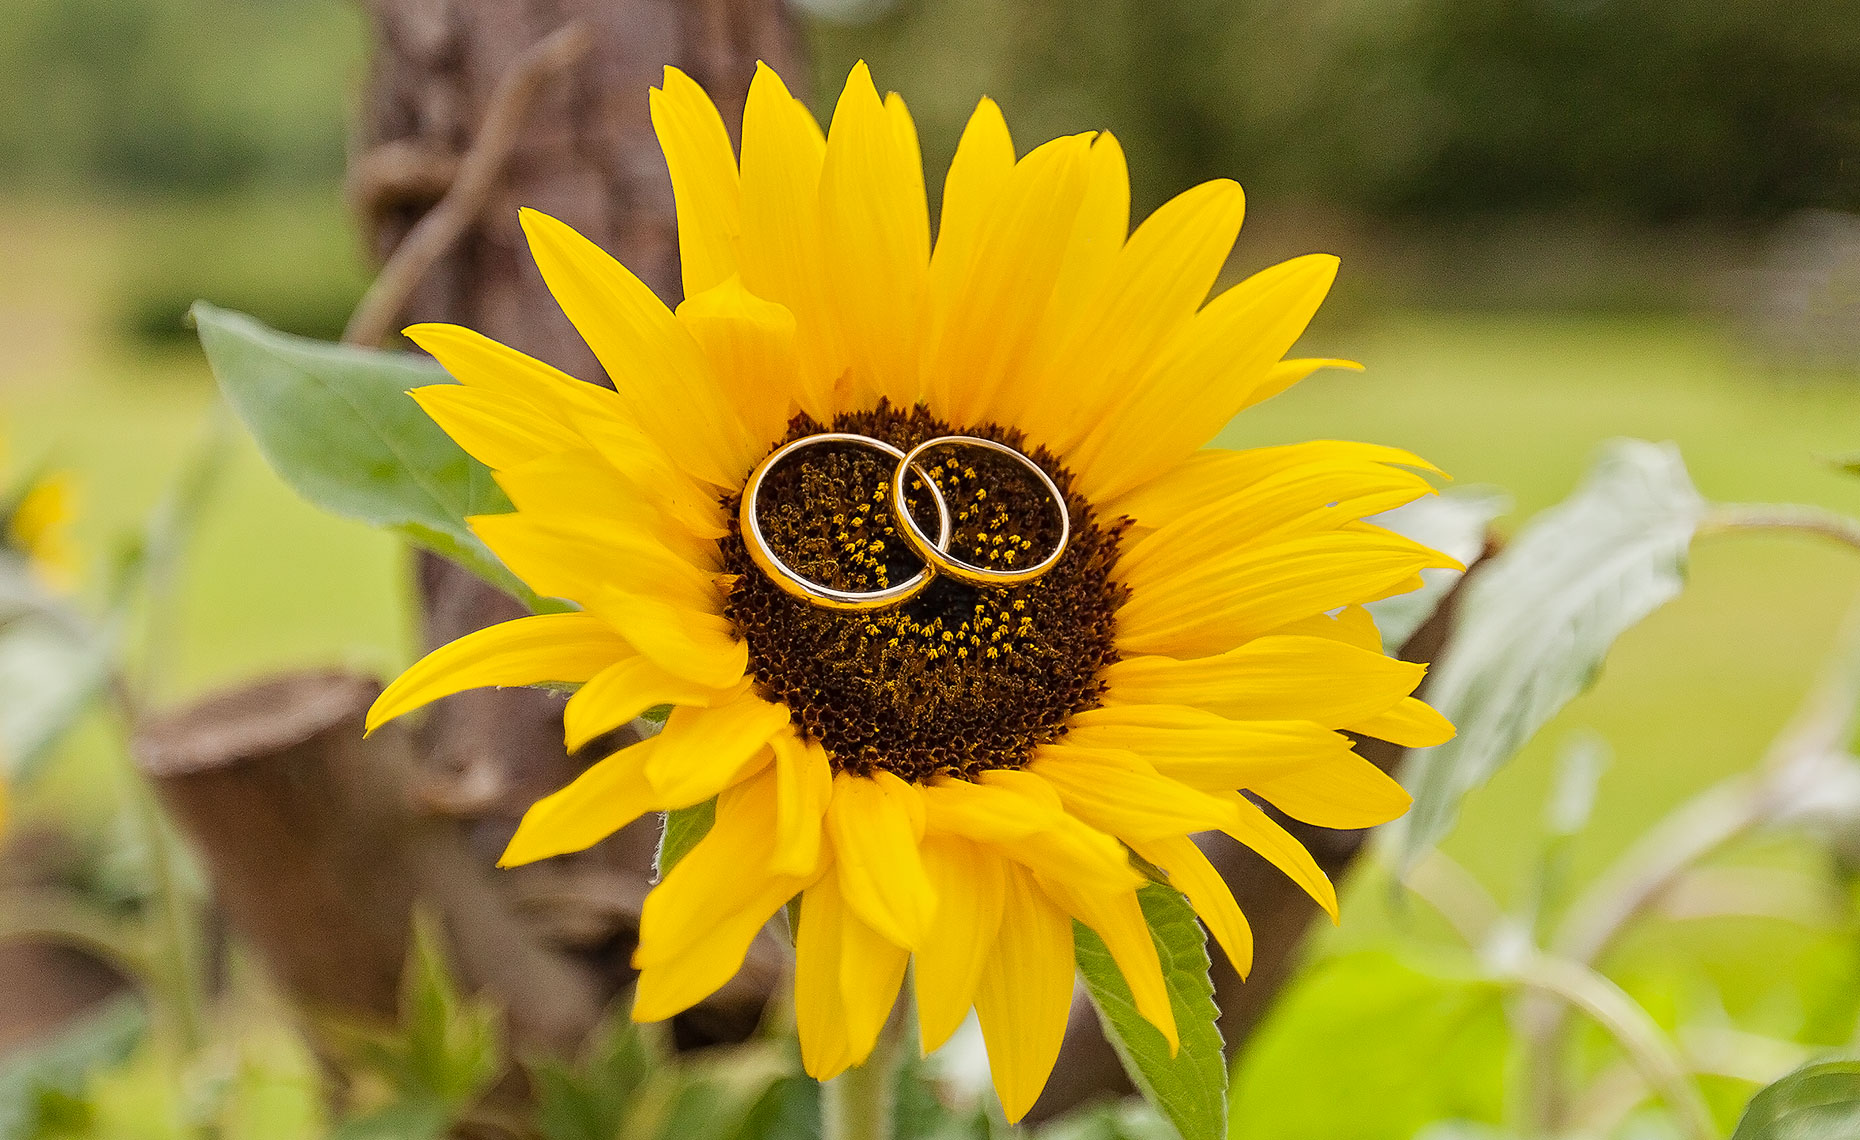 Gold wedding rings resting inside of sunflower